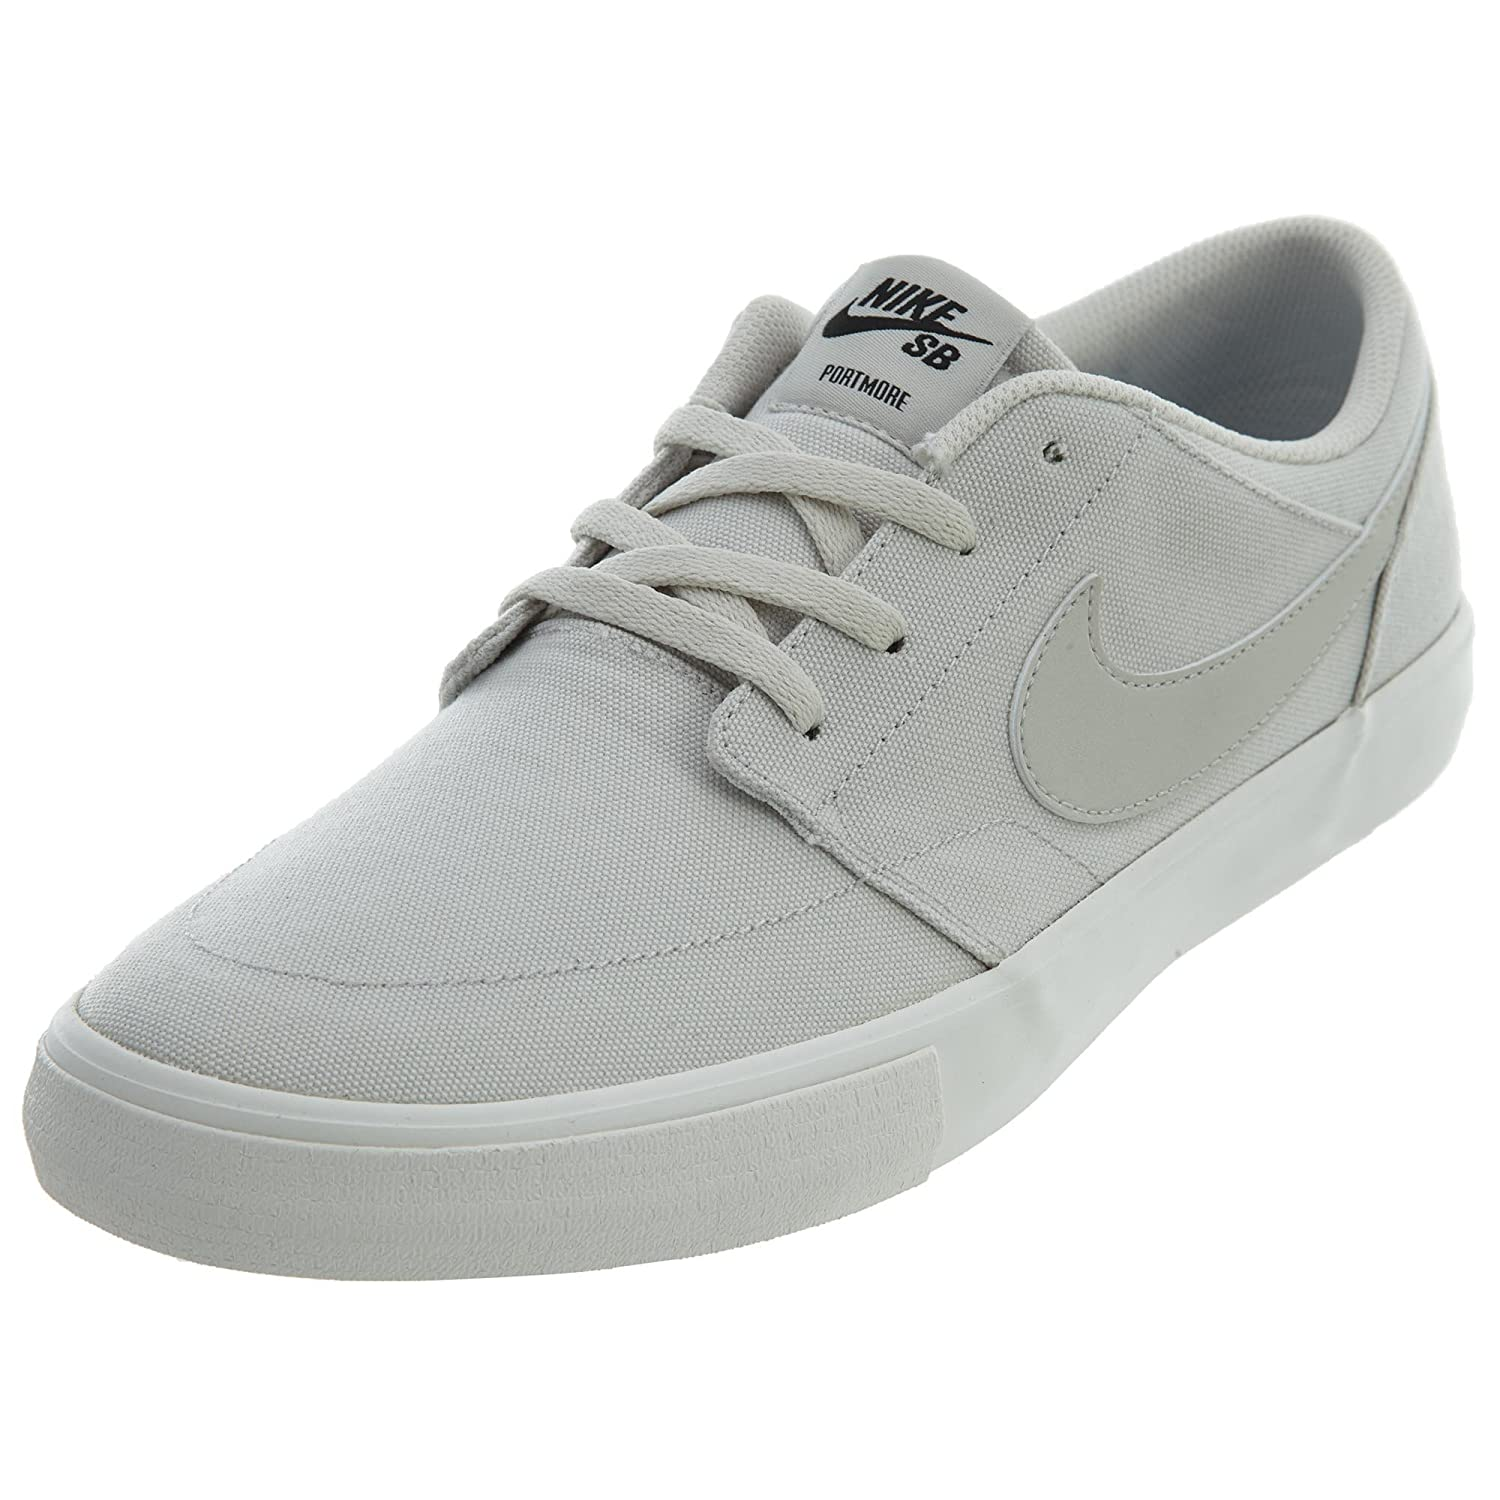 NIKE Men's Sb Portmore Ii Solar Ankle-High Canvas Skateboarding Shoe B071V922KW 8 M US|Light Bone/Light Bone/Black